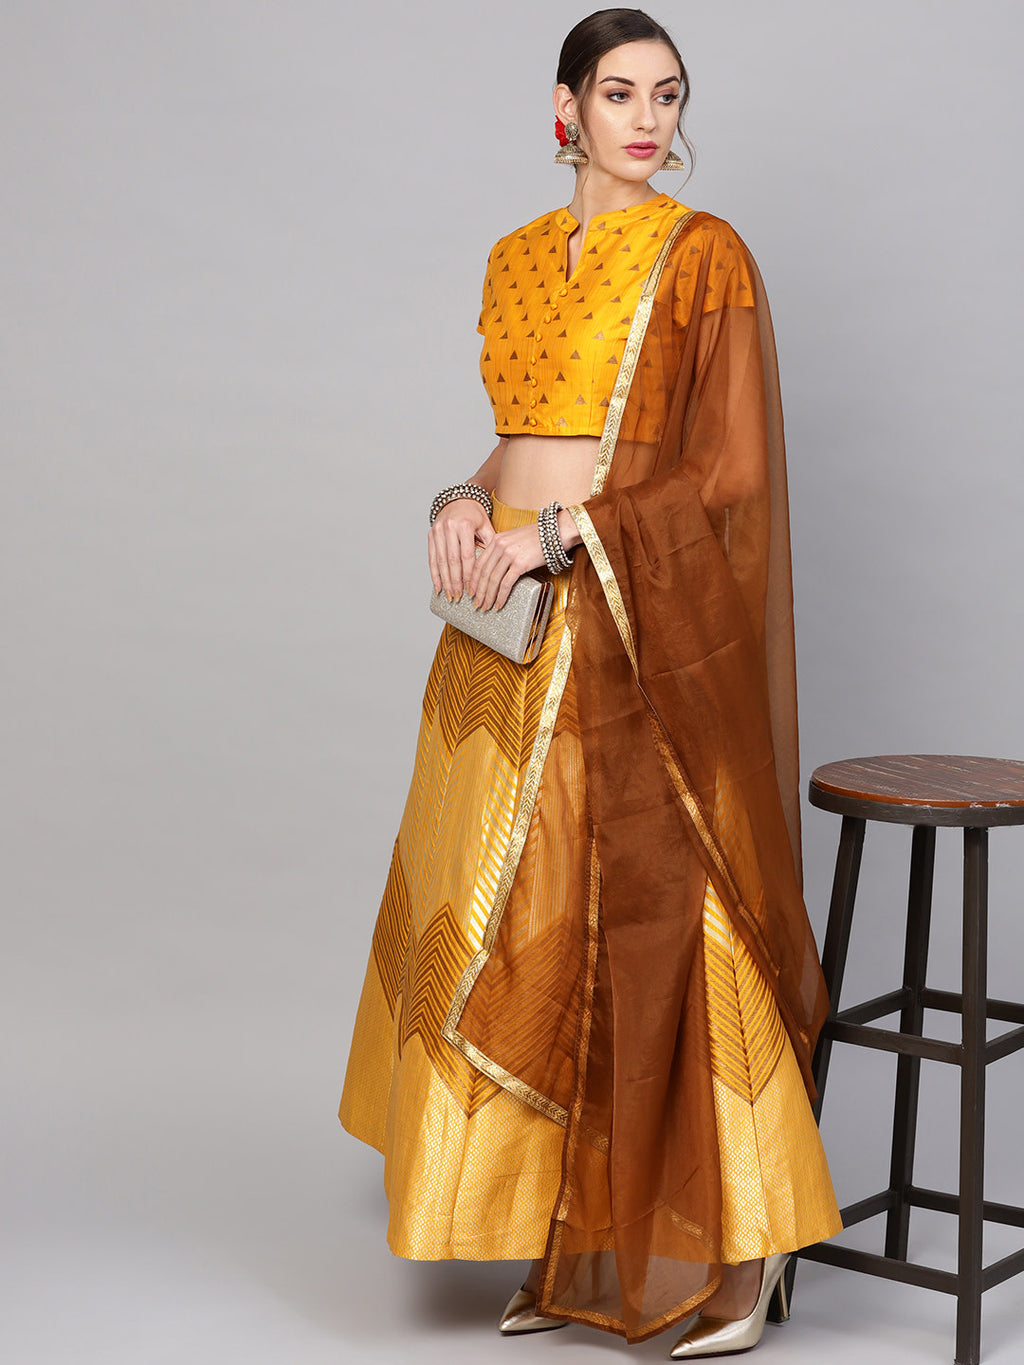 Mustard Yellow & Golden Brocade Ready to Wear Lehenga & Blouse with Dupatta